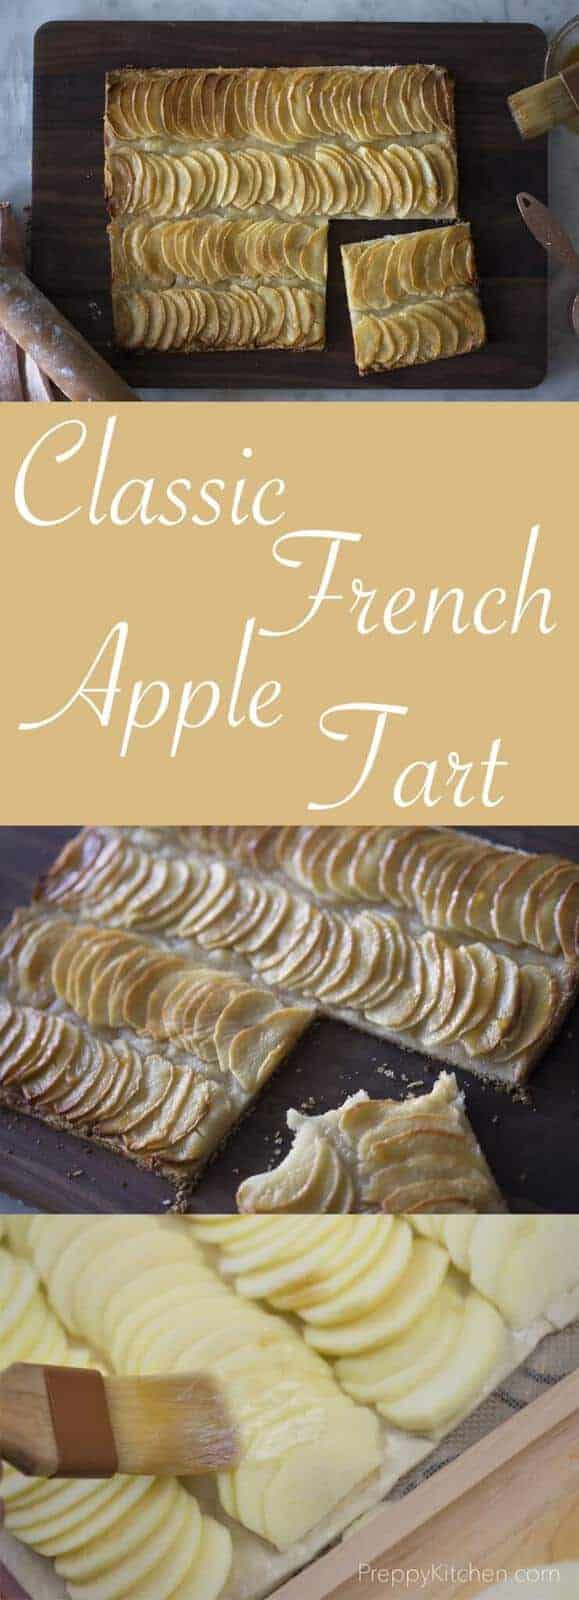 A classic french apple tart really highlights the natural flavor of fresh apples and is so easy to make. Full recipe on the blog.